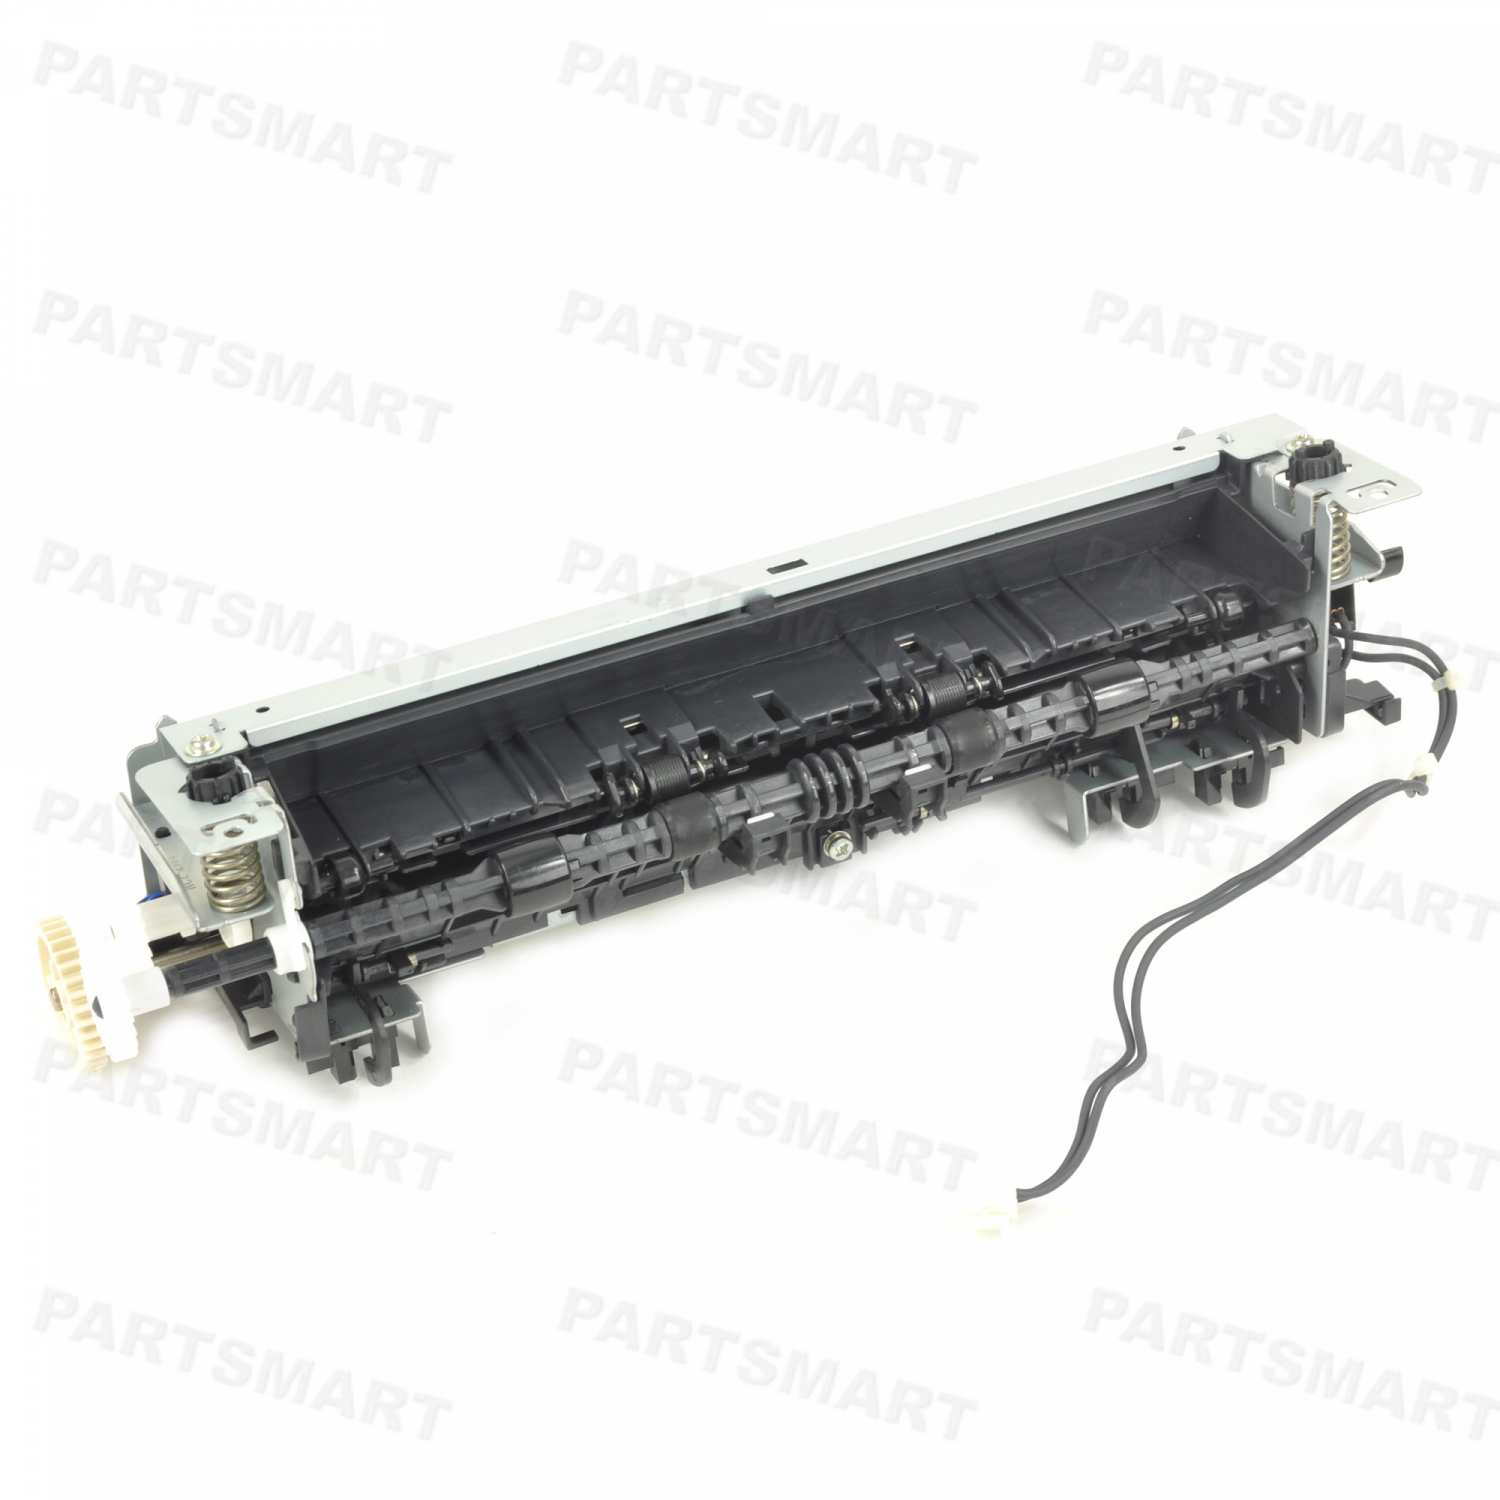 RM1-4430-000 Fuser Assembly (110V) Color LaserJet CP1215,Color LaserJet CP1525